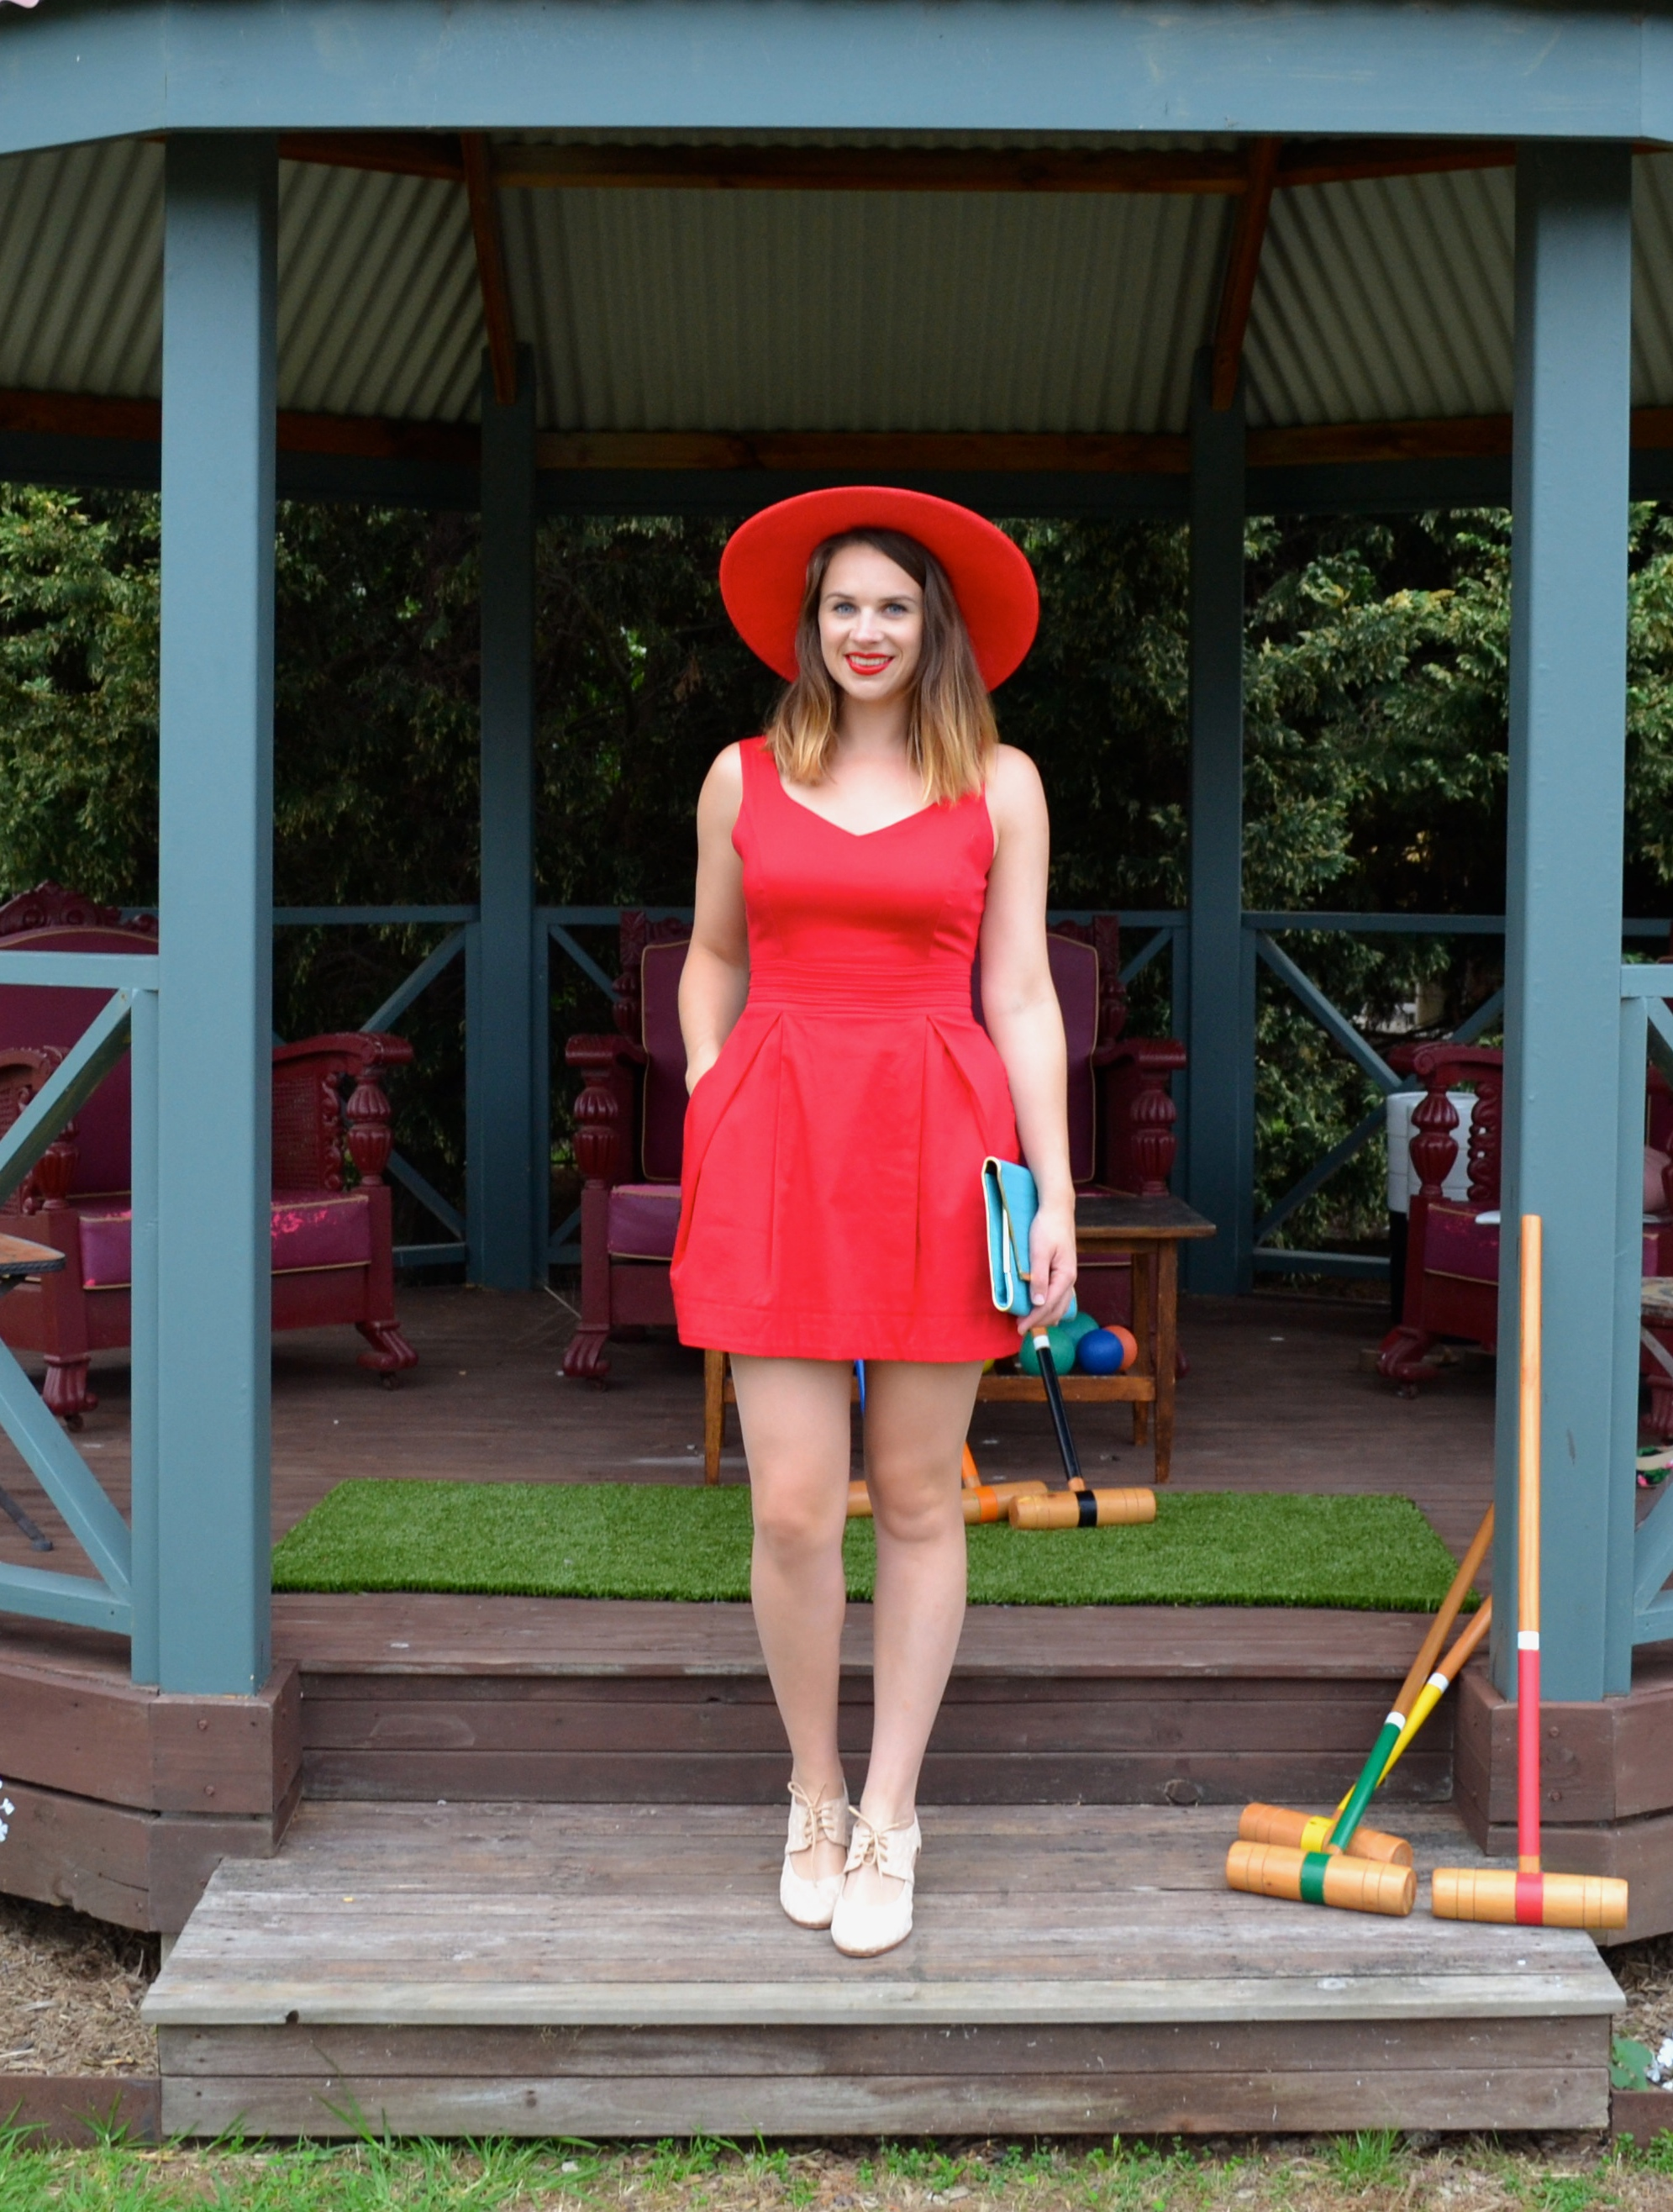 red-dress-red-hat-croquet-set